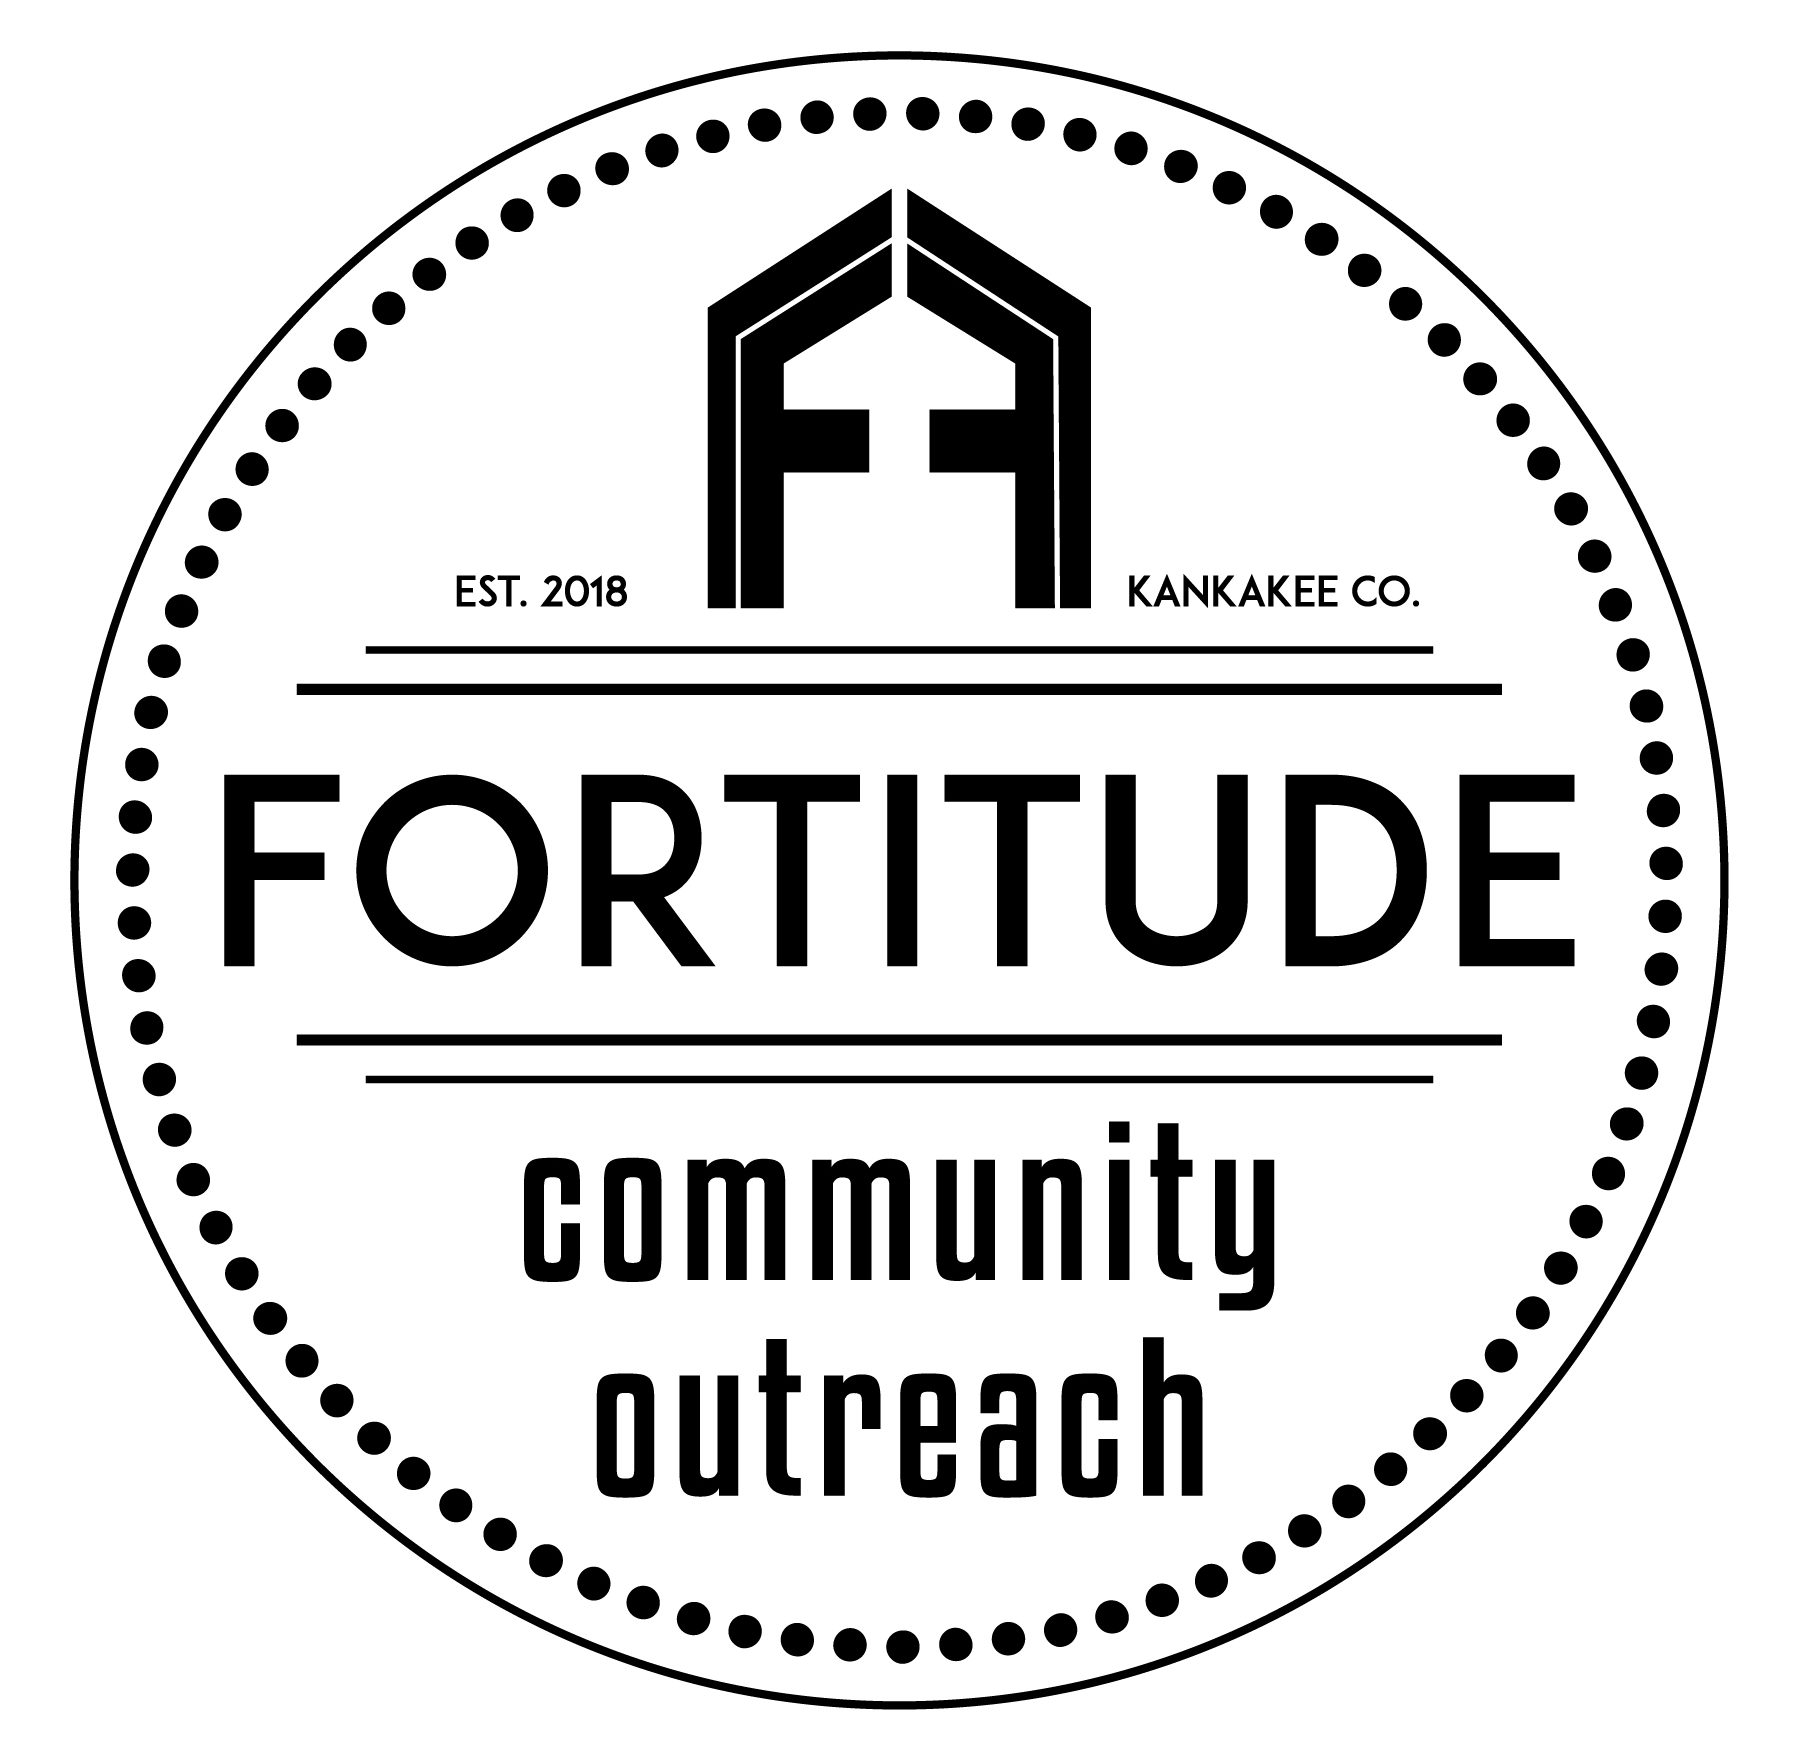 Fortitude Community Outreach